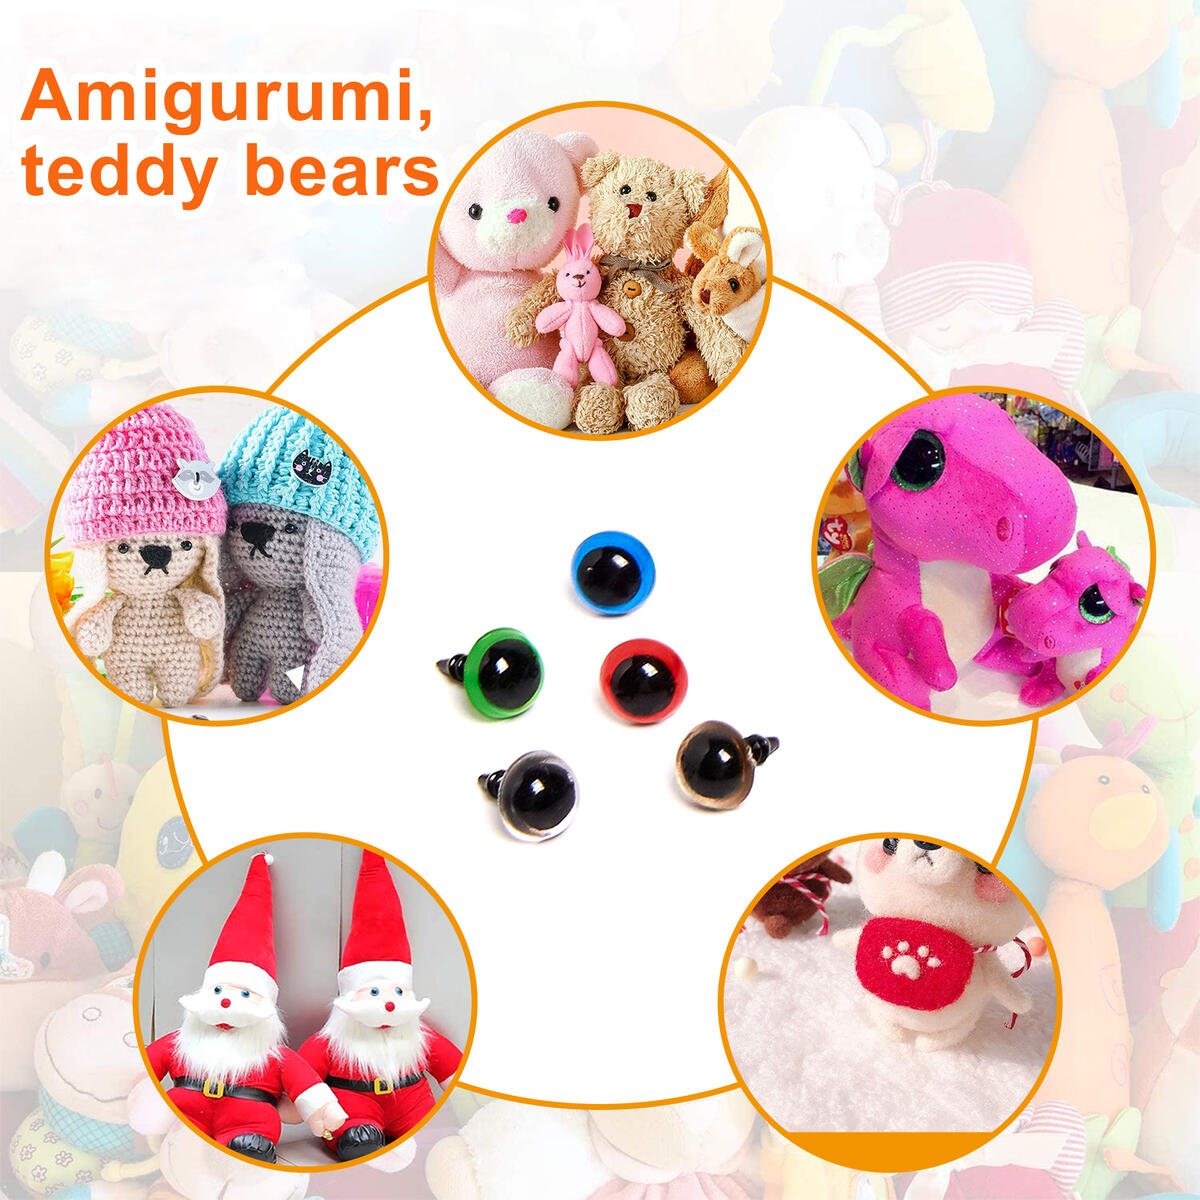 636pcs Plastic Safety Eyes and Noses, Includes 228pcs Colorful Safety Eyes and 90pcs Safety Nose with 318pcs Washers, Multiple Sizes for Doll, Plush Animal and Teddy Bear Craft Making